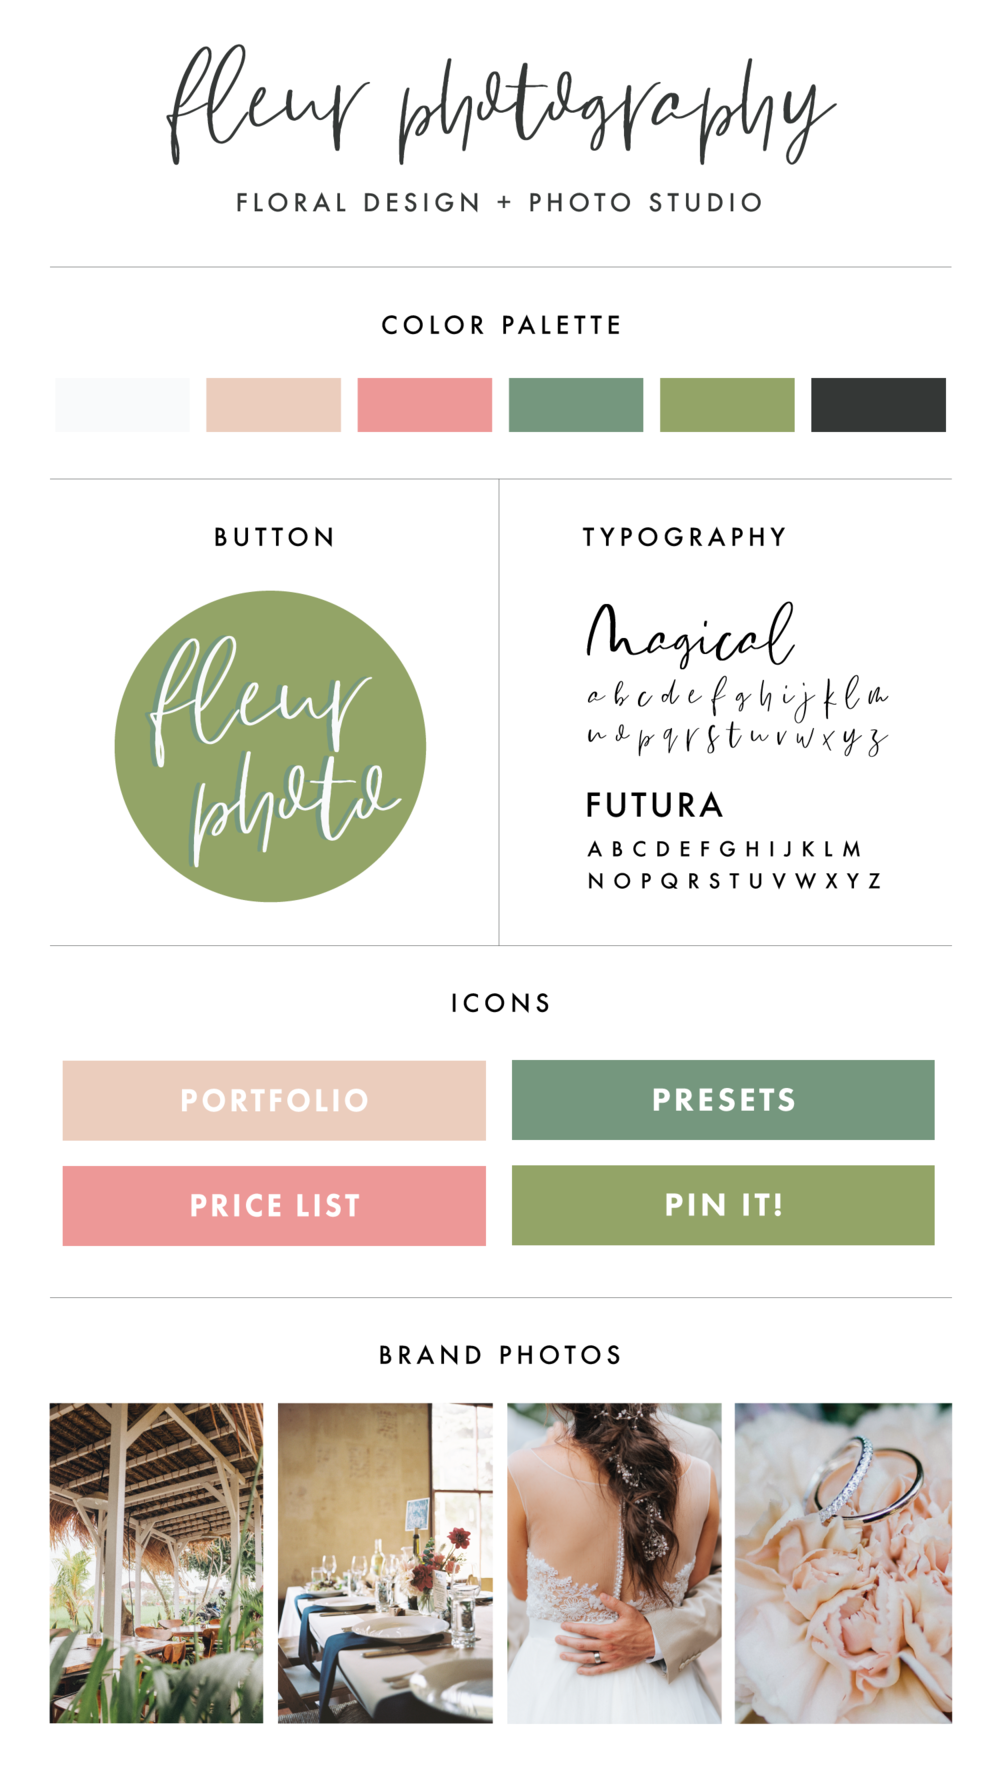 Premade Branding & Logo Kit | Branding Kit for Photographers | Wedding Inspiration | Wedding Photographers | Branding Design | Brand Identity | Branding Kits | Branding For Businesses | Logo Design | Brand Design | Branding | Brand Board | Branding For Creative Entrepreneurs and Small Business Owners